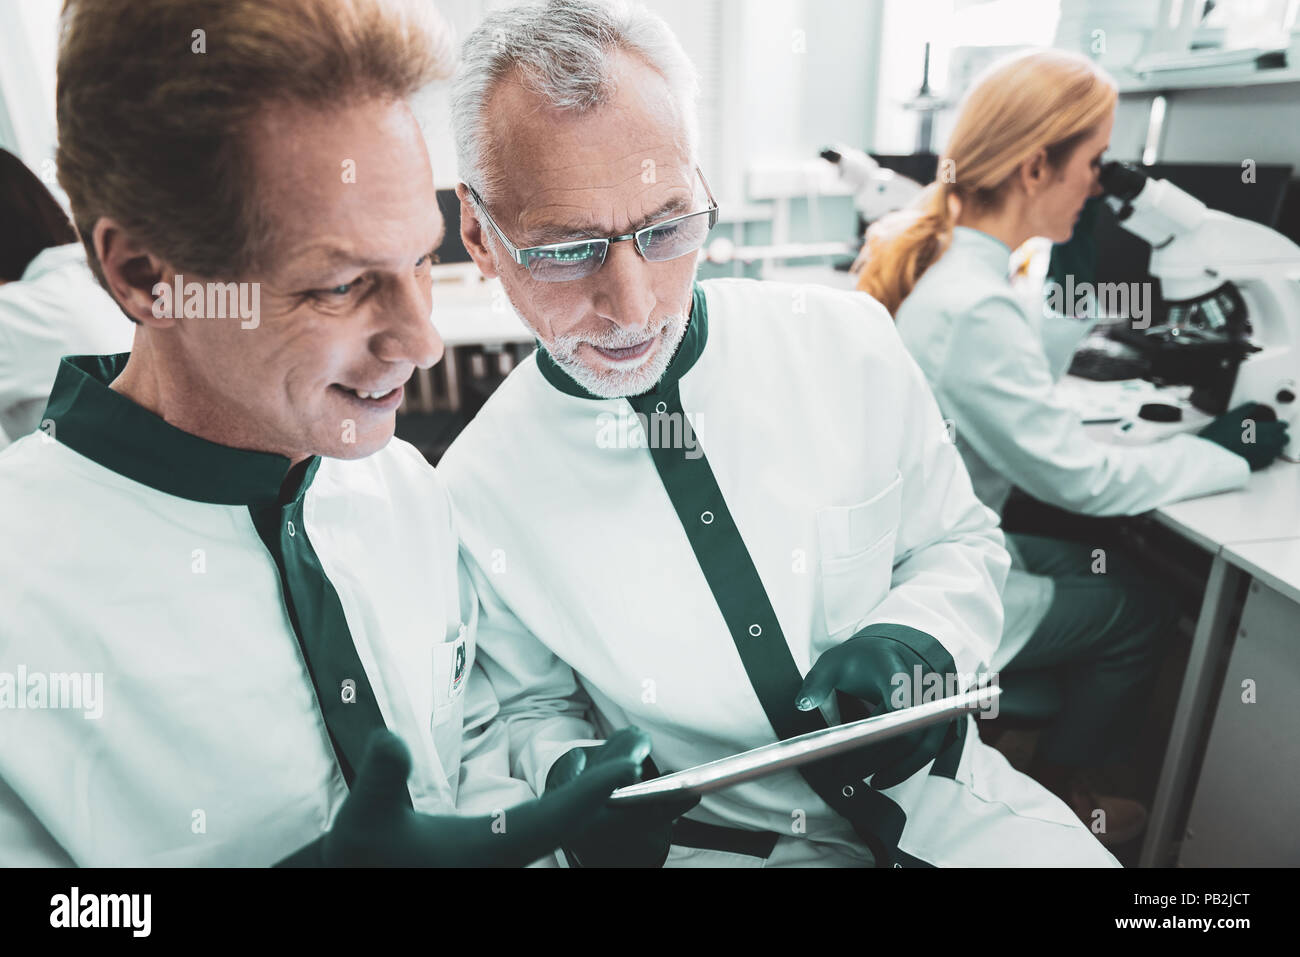 Two male biologists standing near woman in uniform - Stock Image